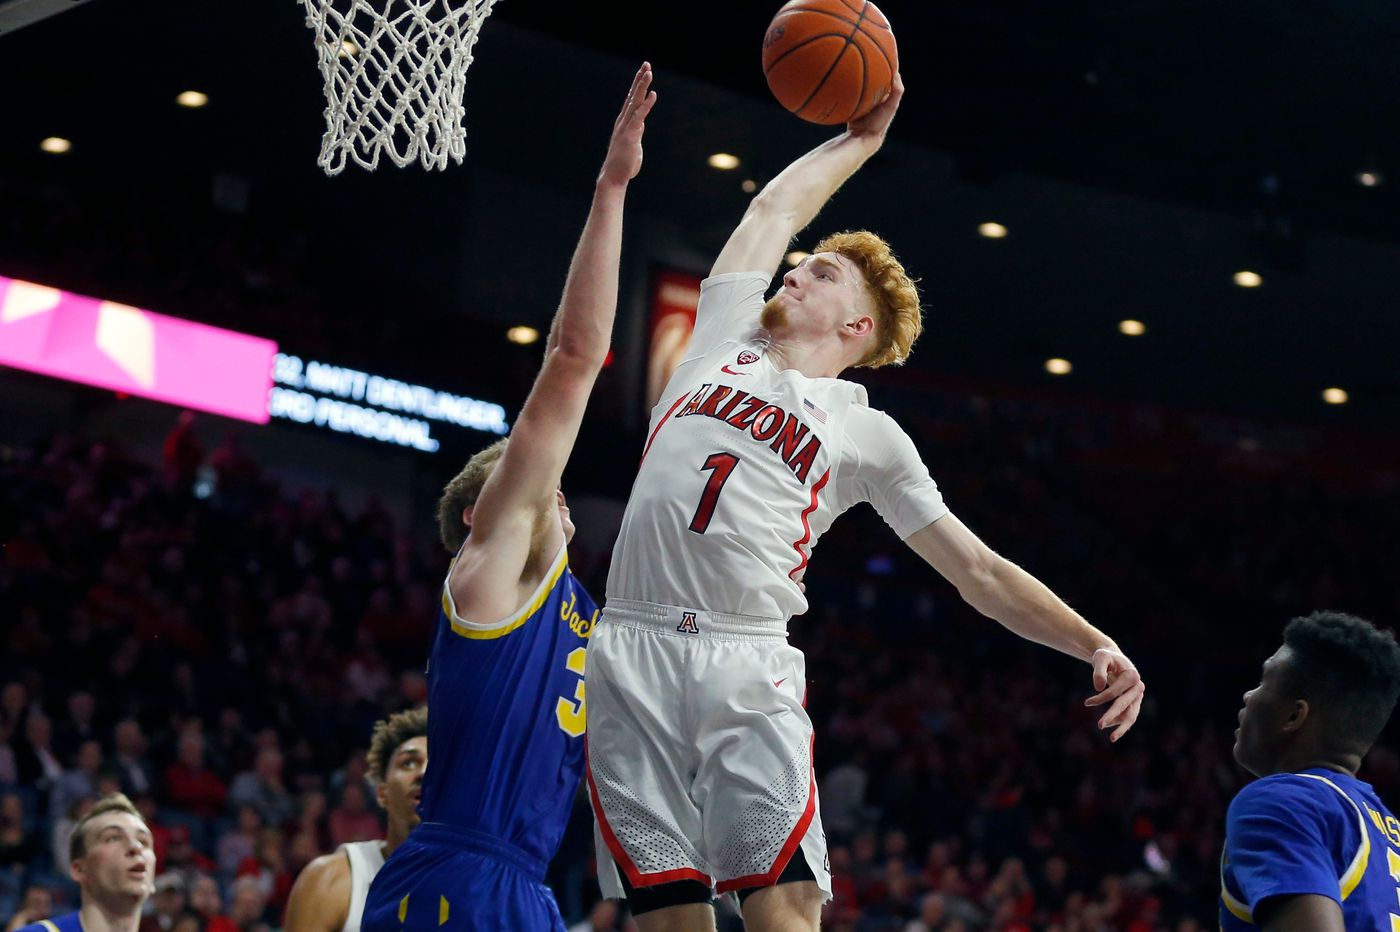 Arizona's Nico Mannion is a possible backup point-guard option for Sixers